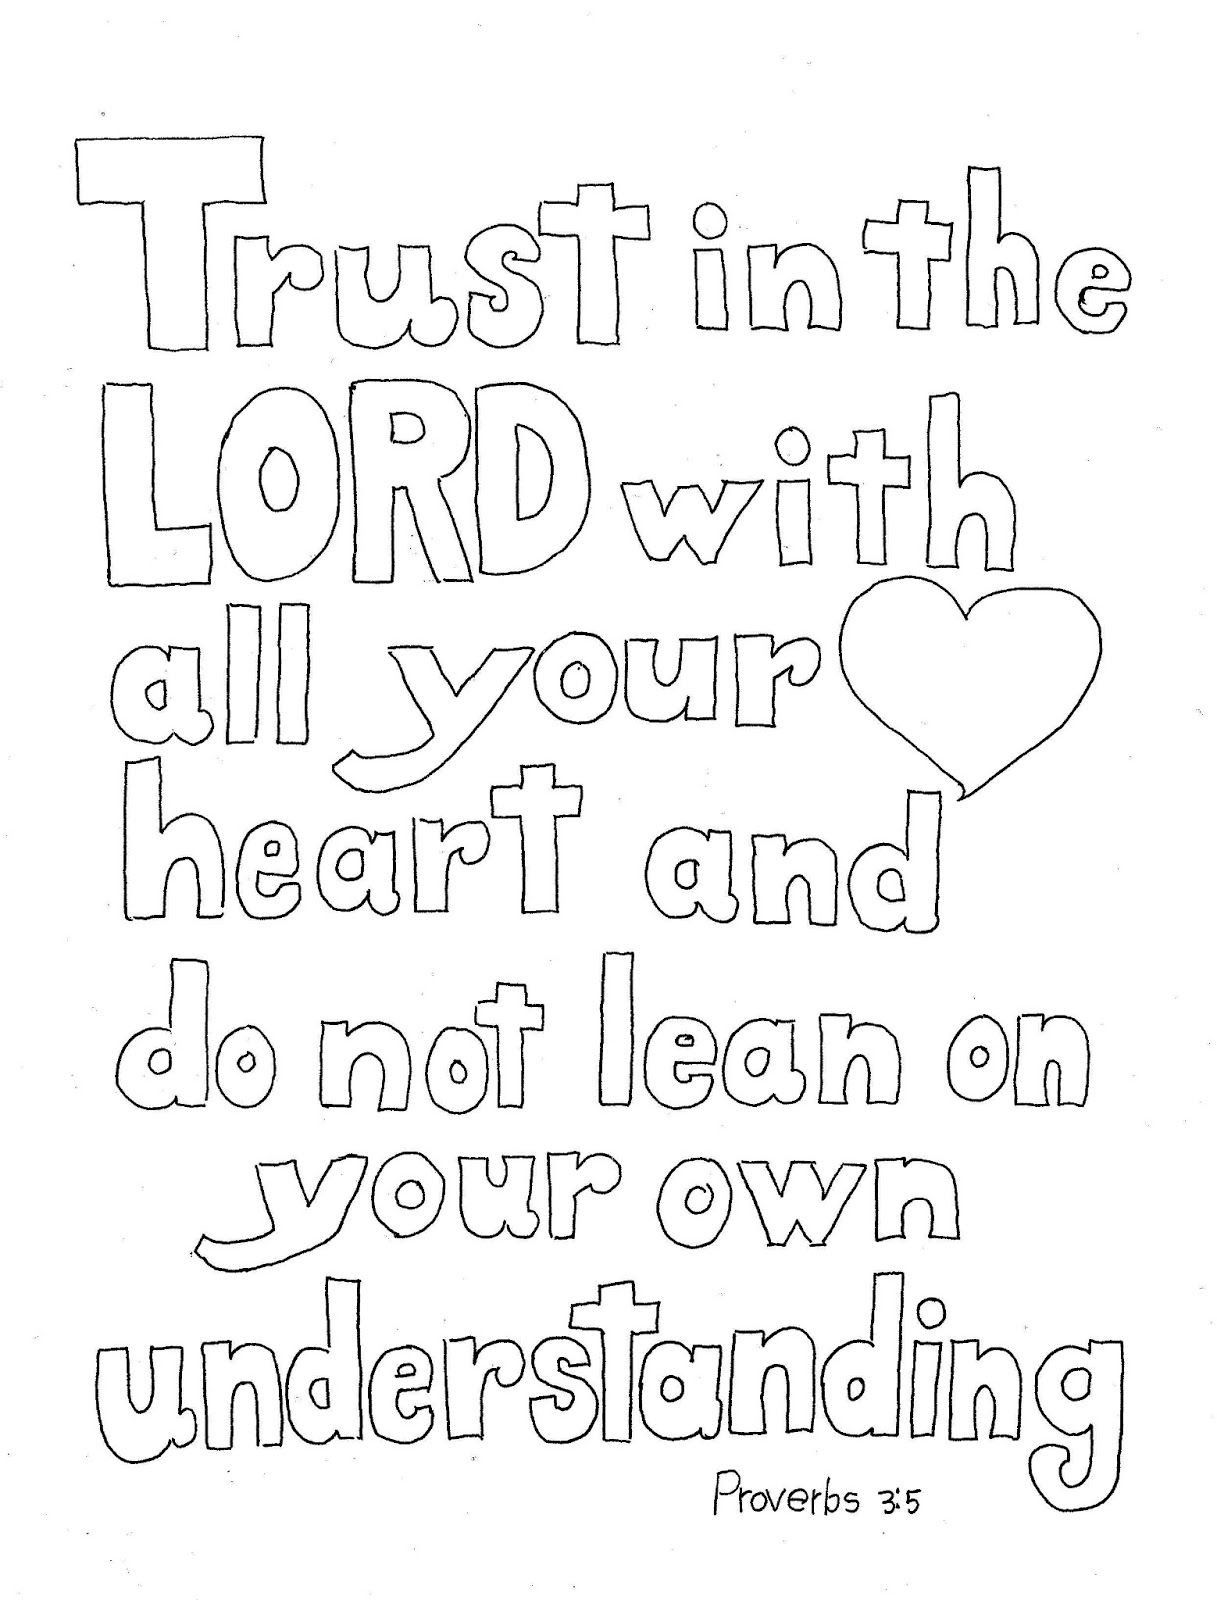 Proverbs 3 5 6 Coloring Page Proverbs 3 5 6 Coloring